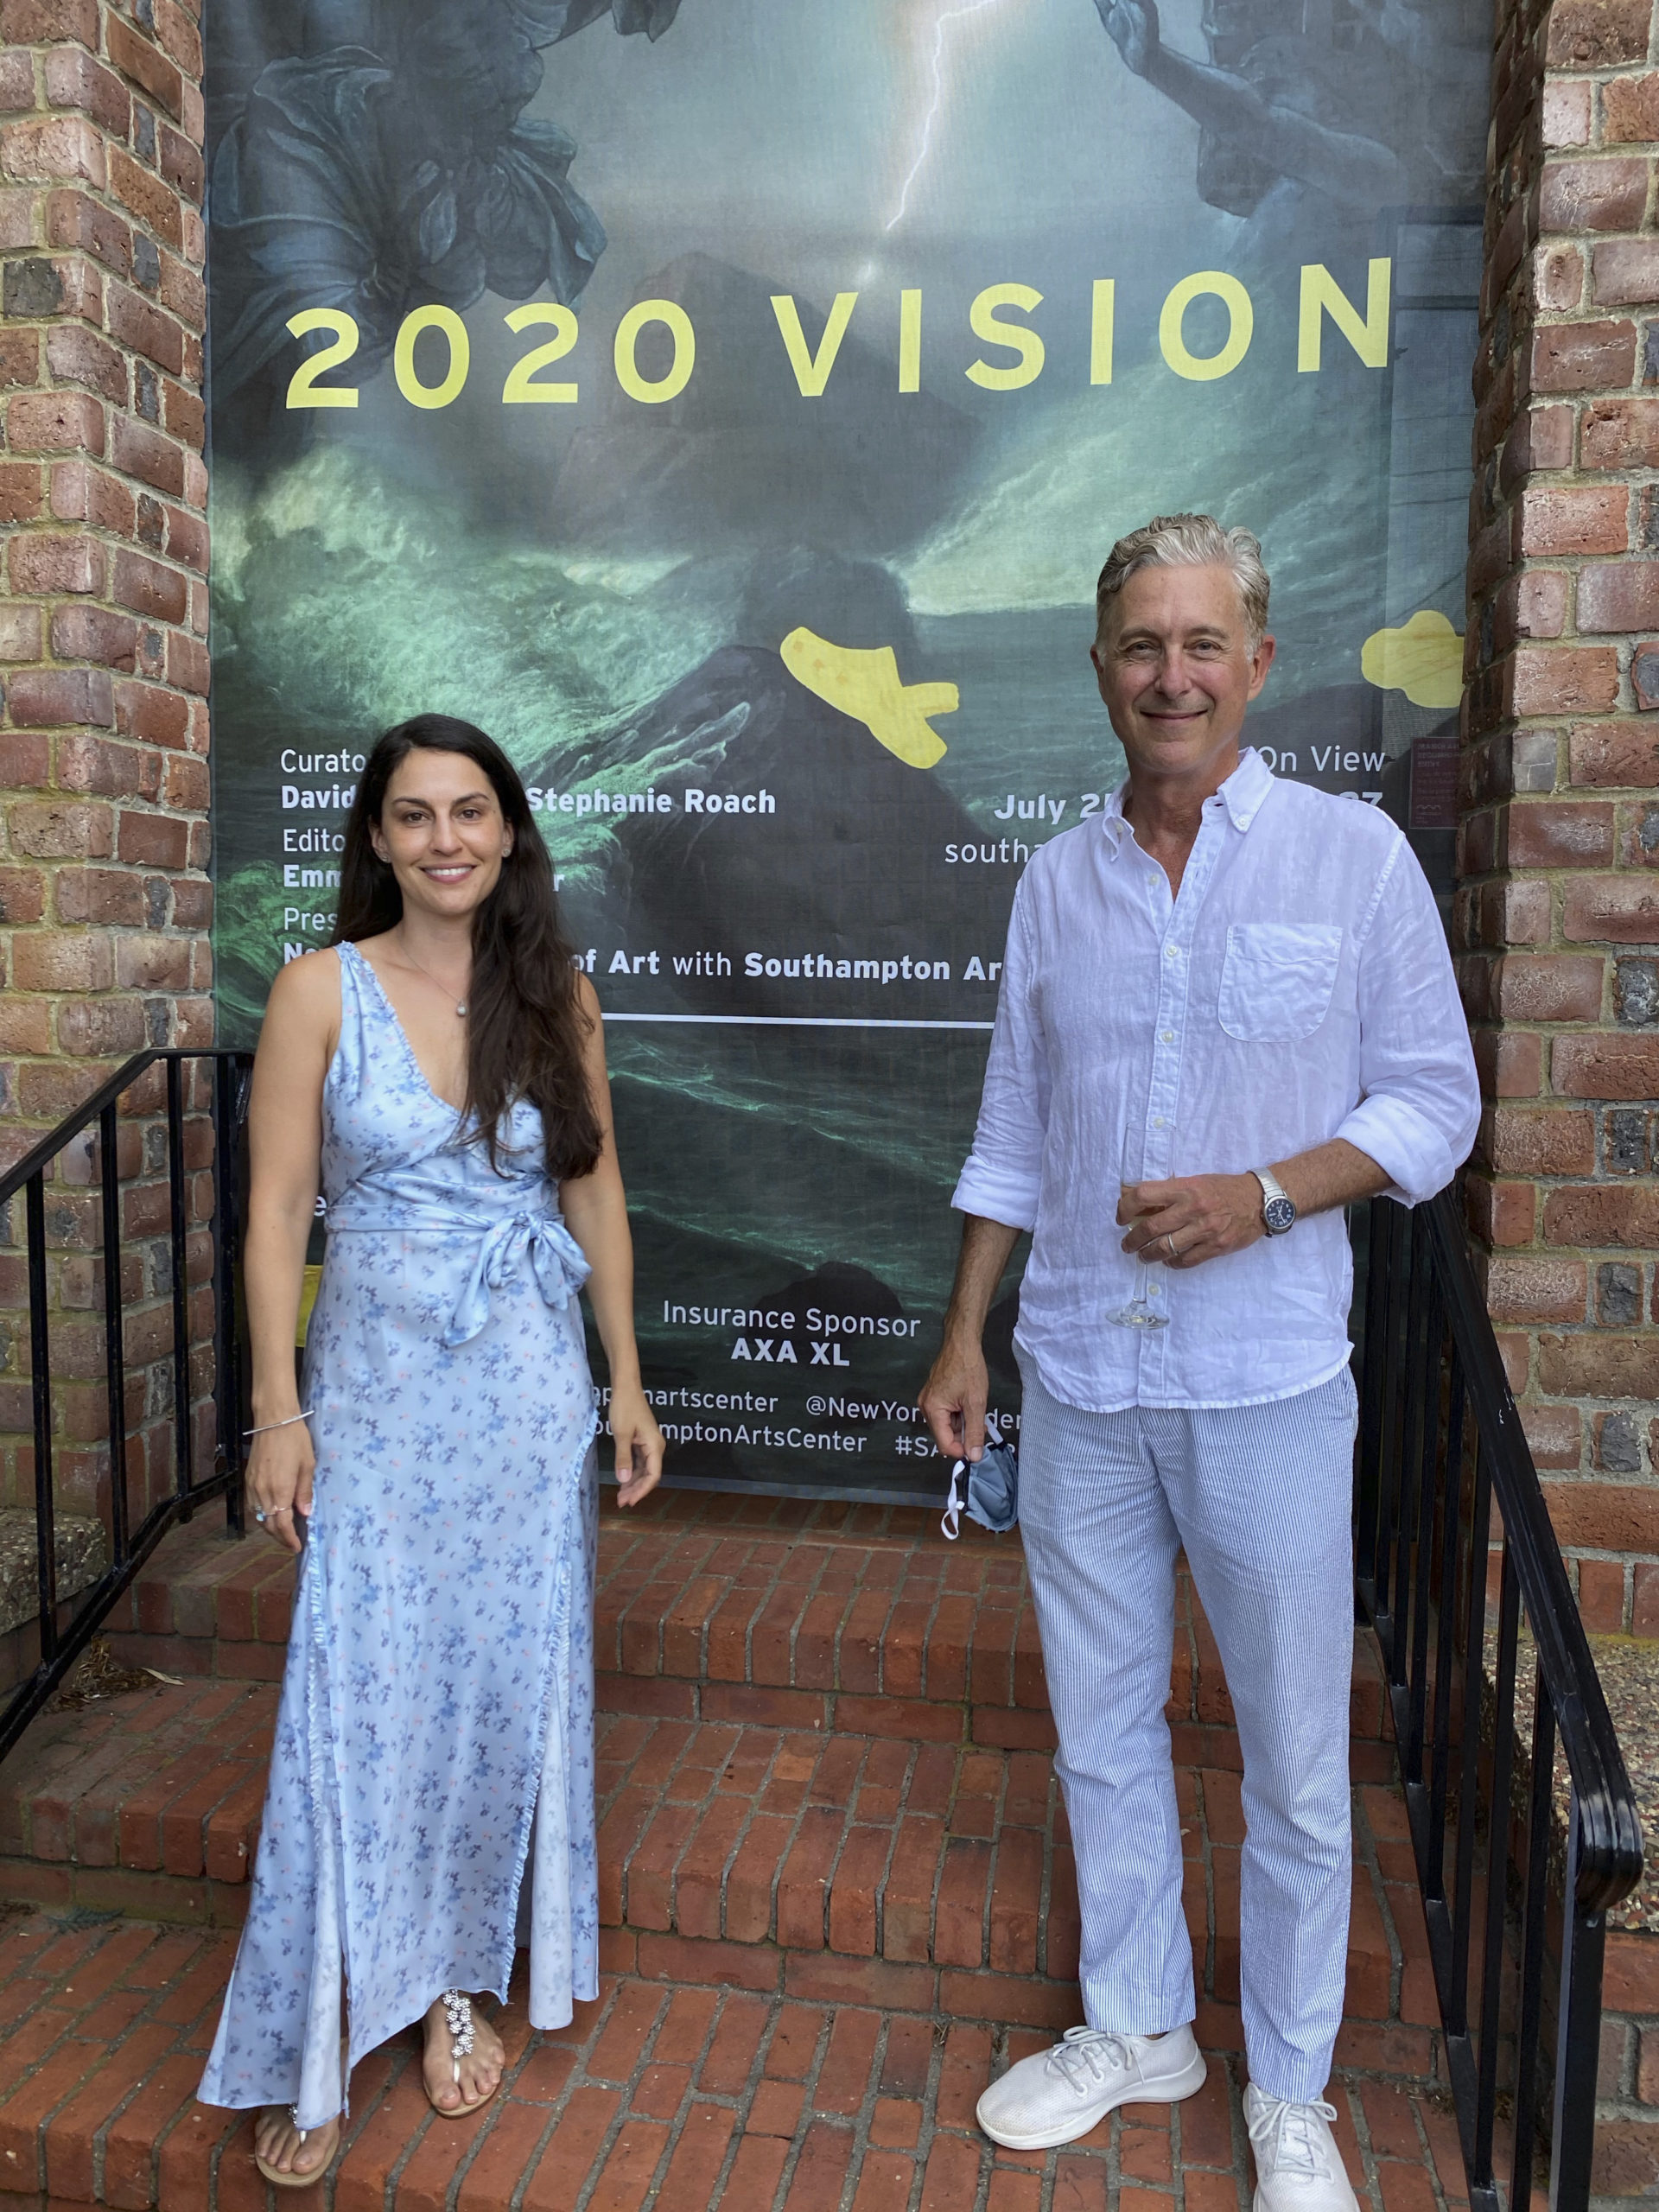 Stephanie Roach and David Kratz at the Southampton Arts Center 2020 Vision opening.